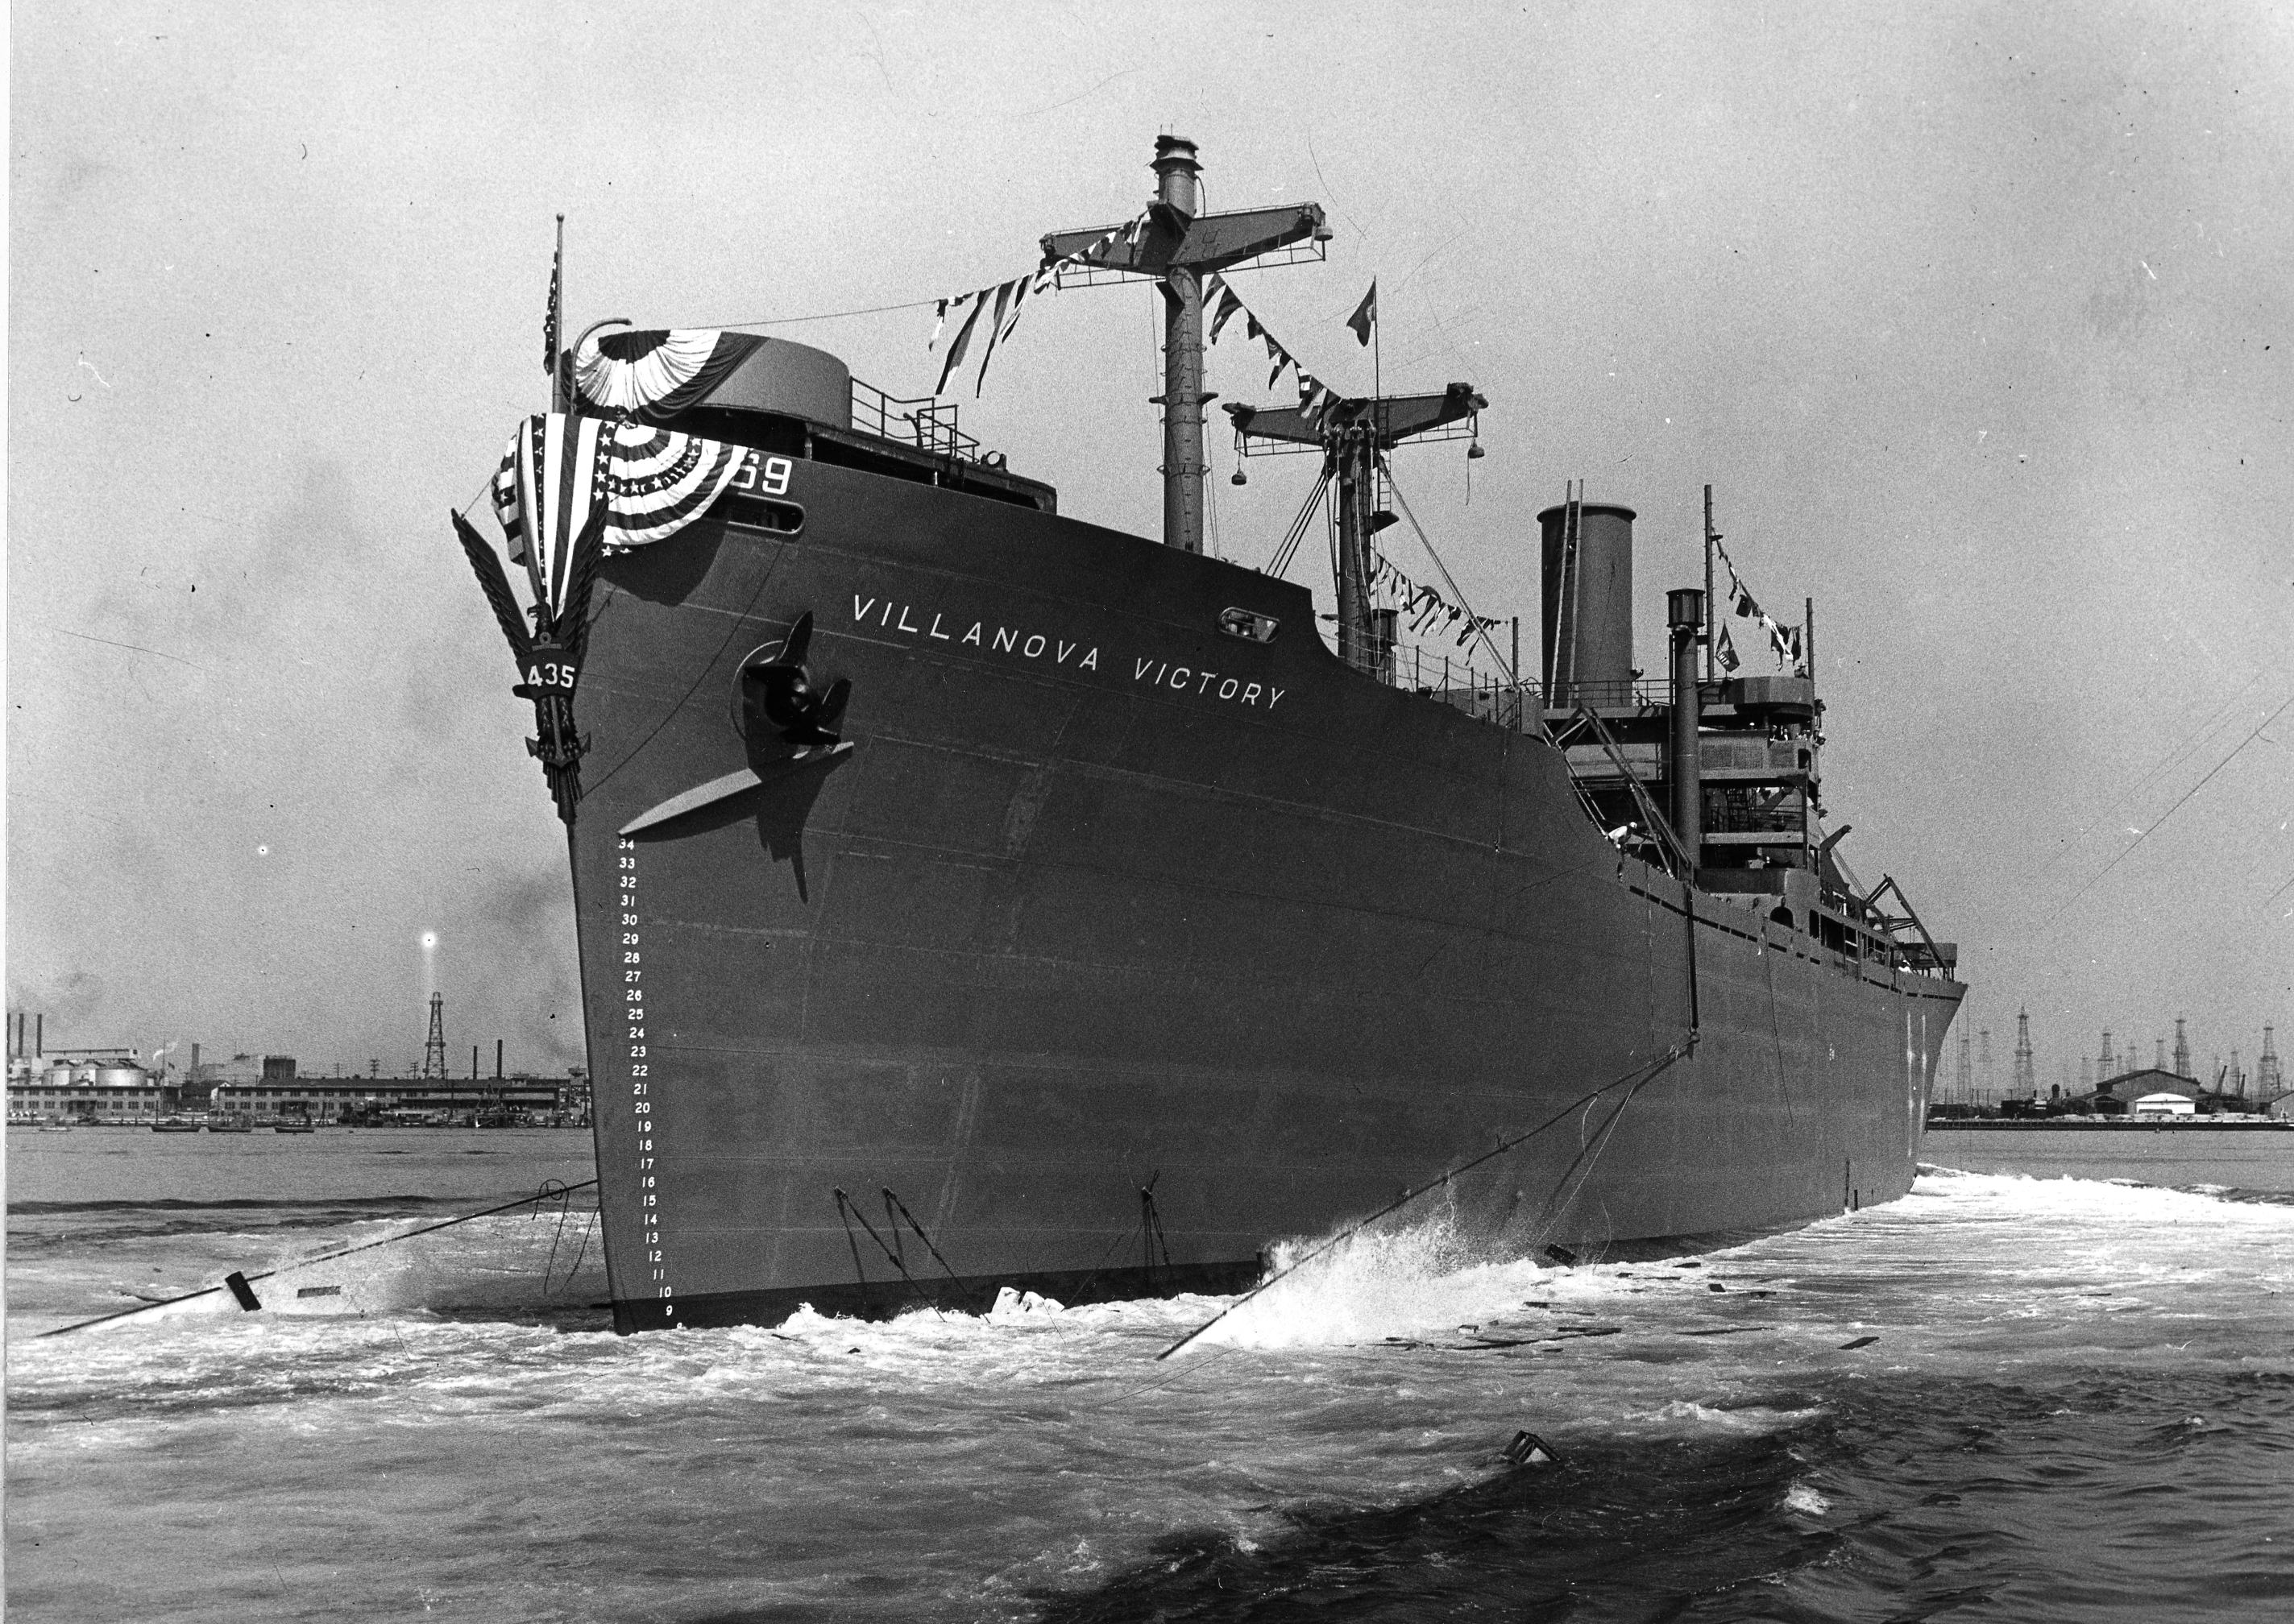 Launching of the S.S. Villanova Victory Ship